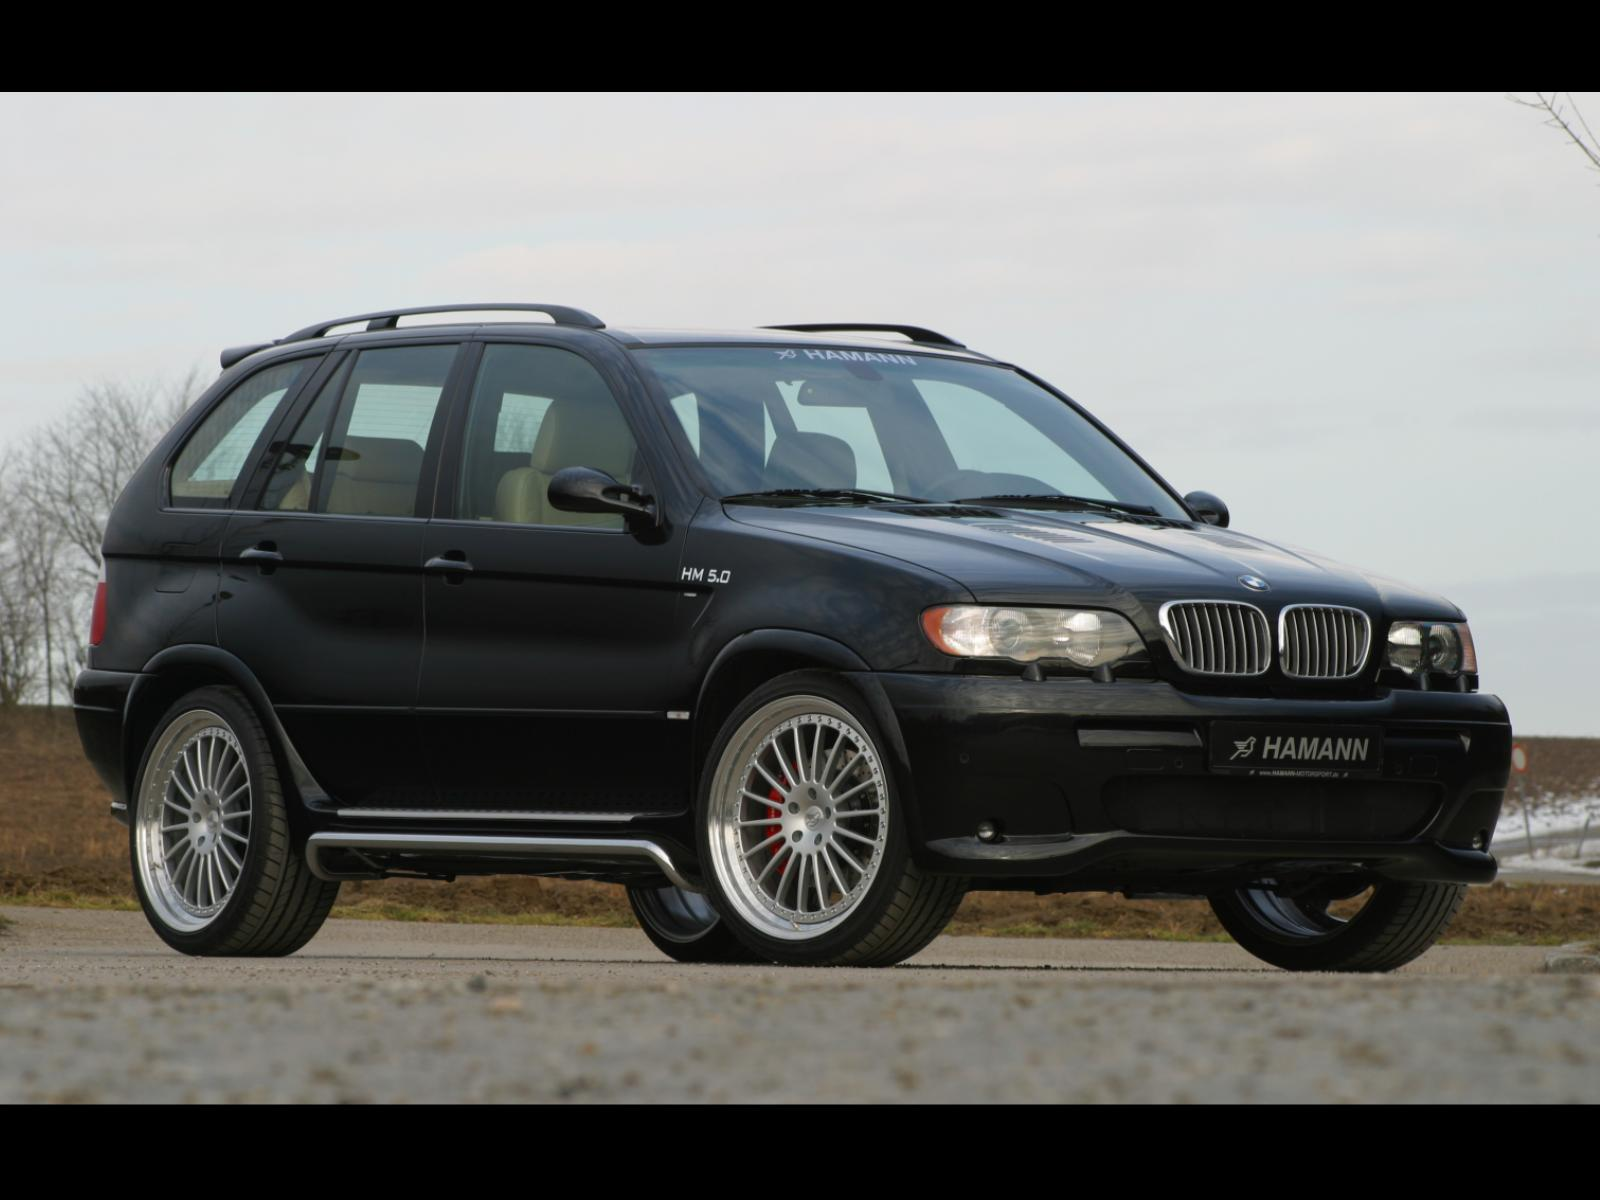 bmw x5 g05 html with Hamann Bmw E53 X5 Hm 4 8 5 0 Model 3551 on Bmw X5 2017 Model further 2018 Subaru Viziv 7 Suv Ascent moreover Audi Q5 Mit Kompressor 1551523 also Edo  petitions 722hp Mercedes Benz Slr Mclaren Black Arrow further Sujet23459 35.